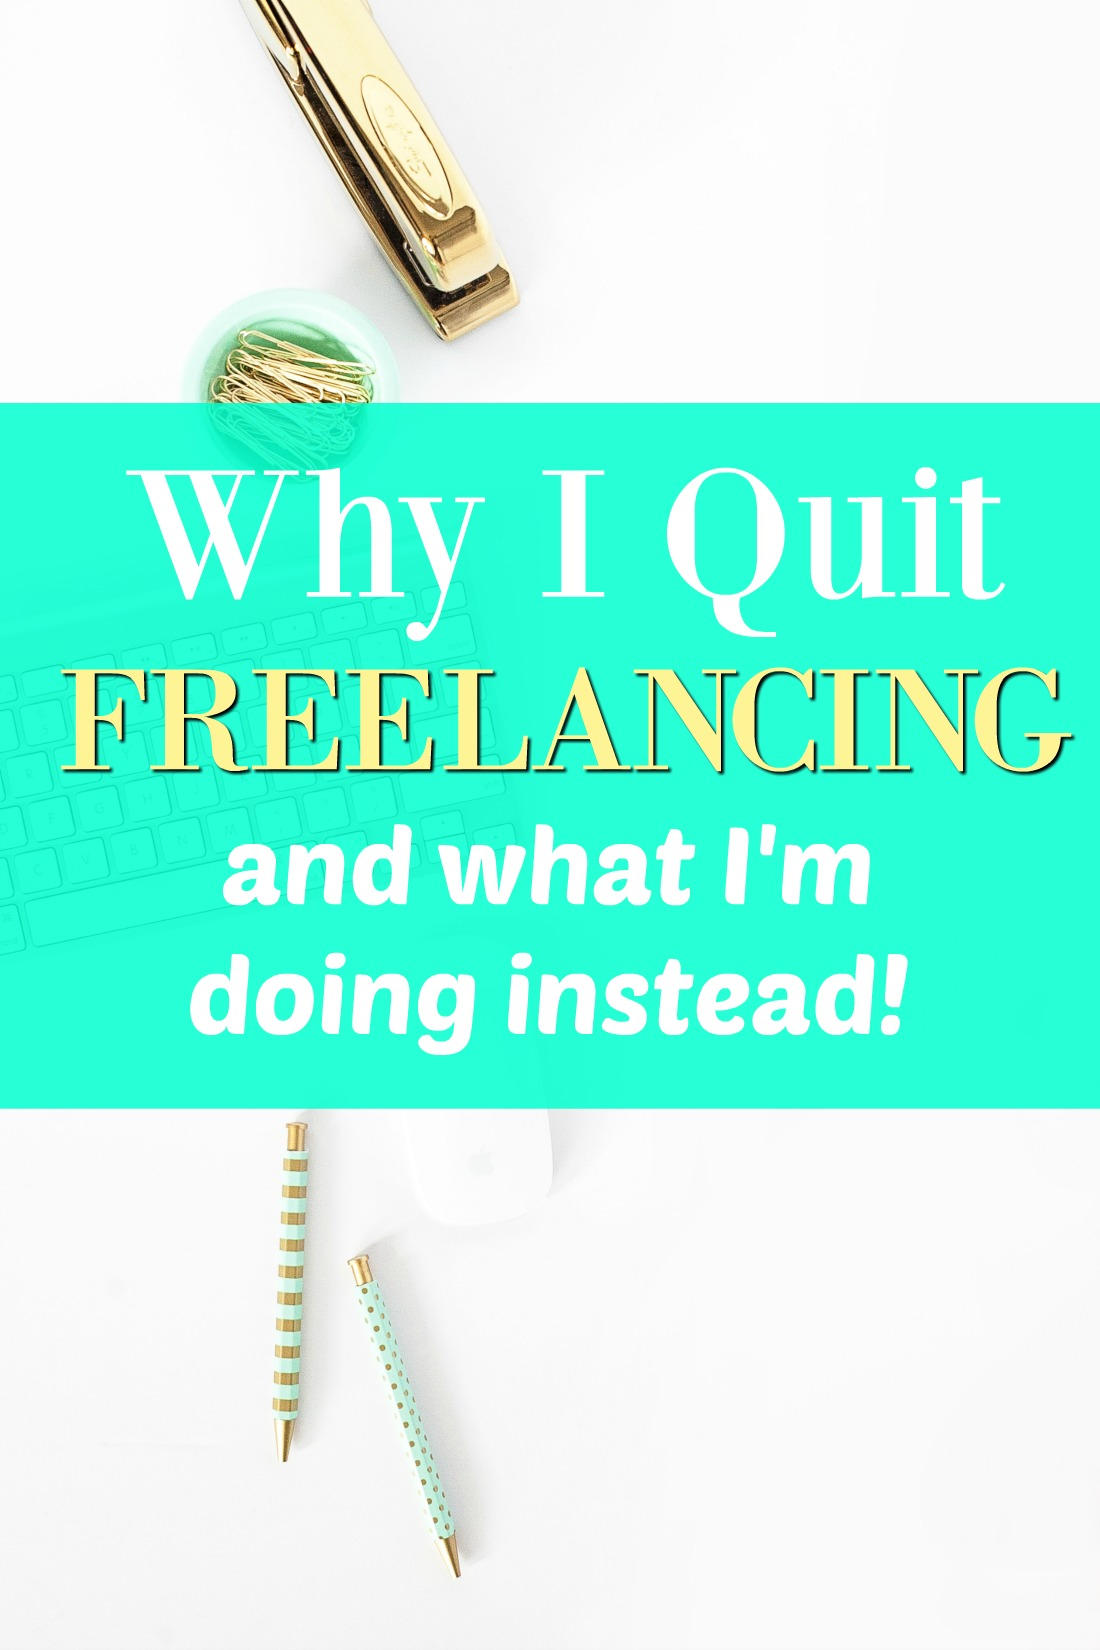 Five months ago, I decided to completely quit freelancing. I've been freelancing for 4+ years but decided it was time to throw in the towel. For me, it's been a great decision! Here is why I quit freelancing ...and what I'm doing instead to earn money from home!